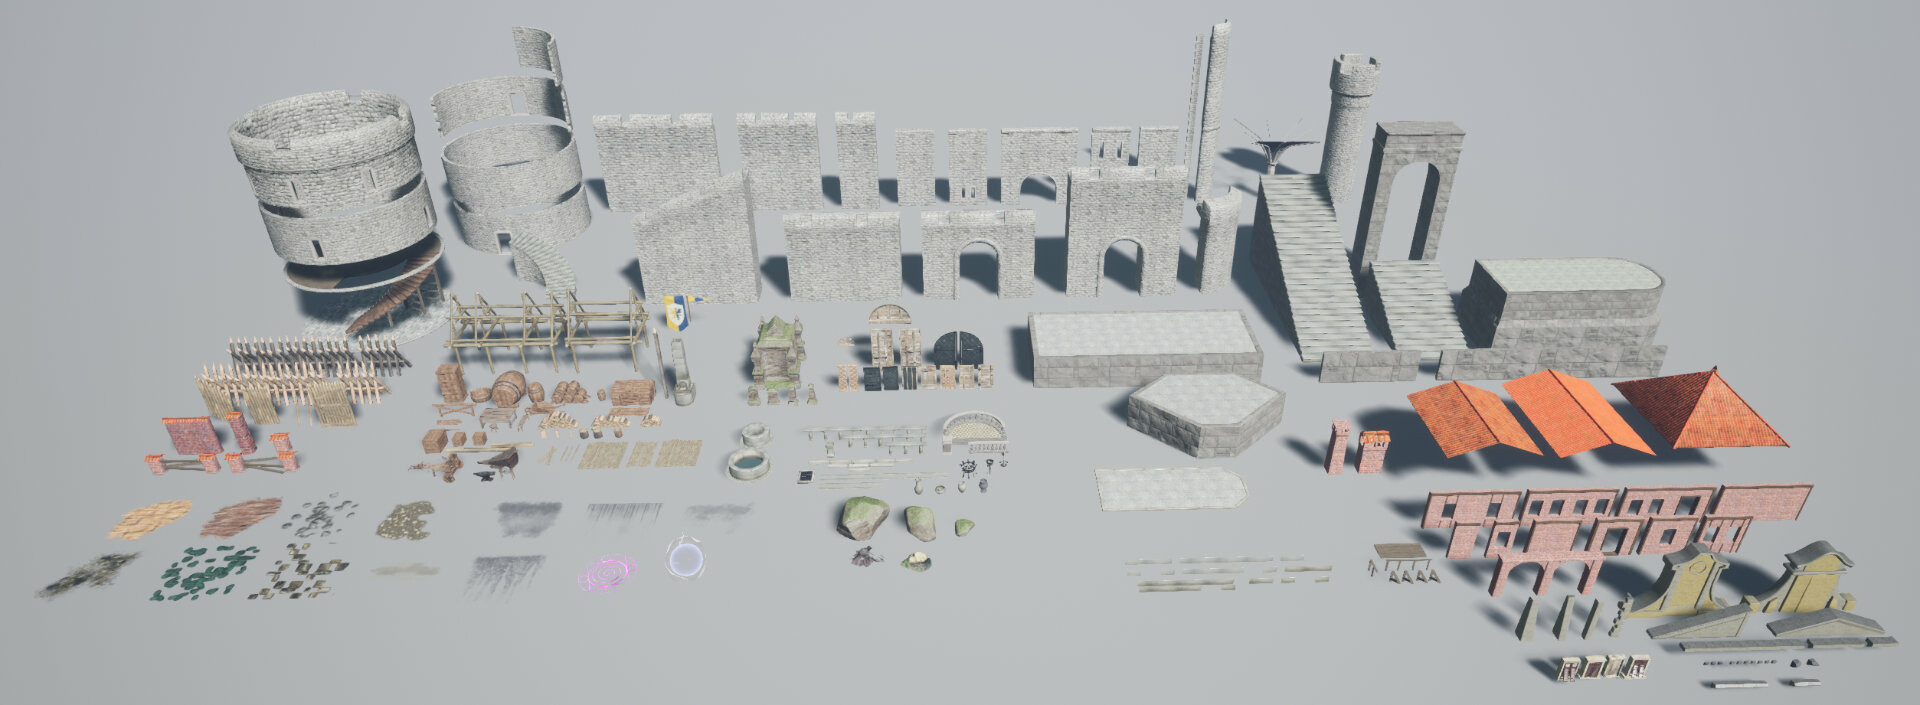 I made over 250 3D models to complete this environment map. Big Part of the modeling was 3 different modular sets: Castle, Fortifications and City buildings.